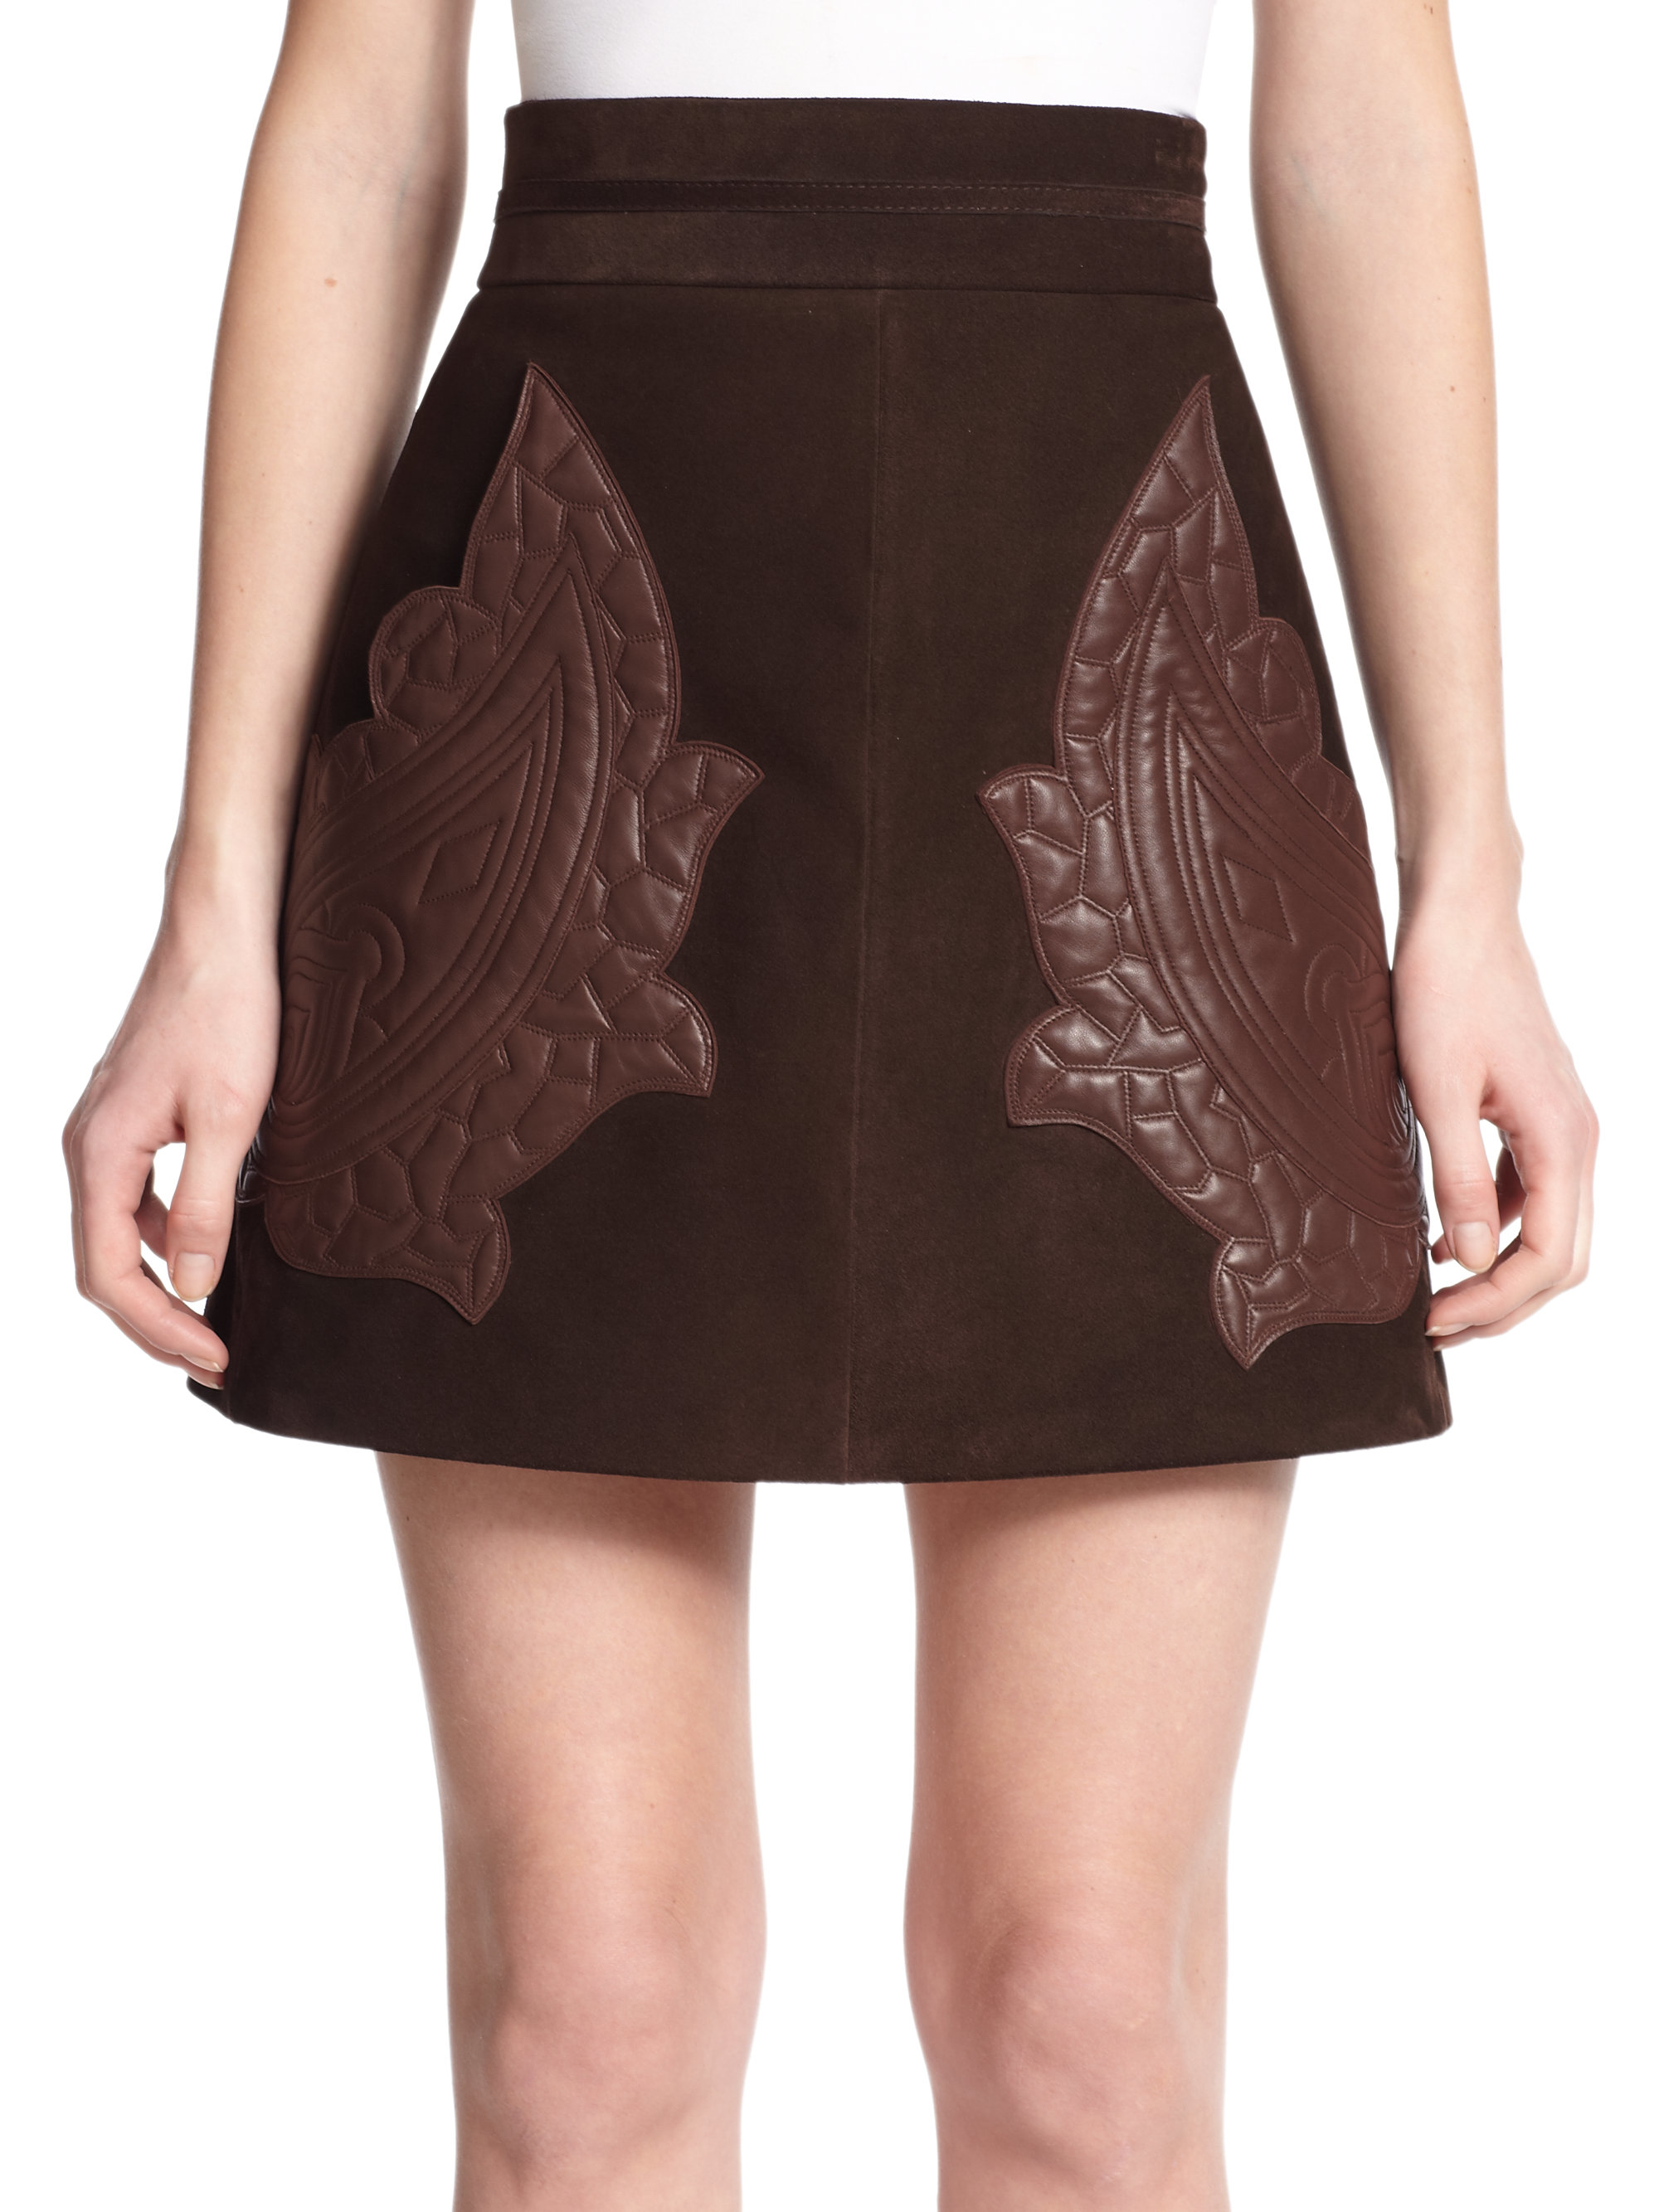 Chloé Paisley-stitched Leather & Suede Skirt in Brown | Lyst